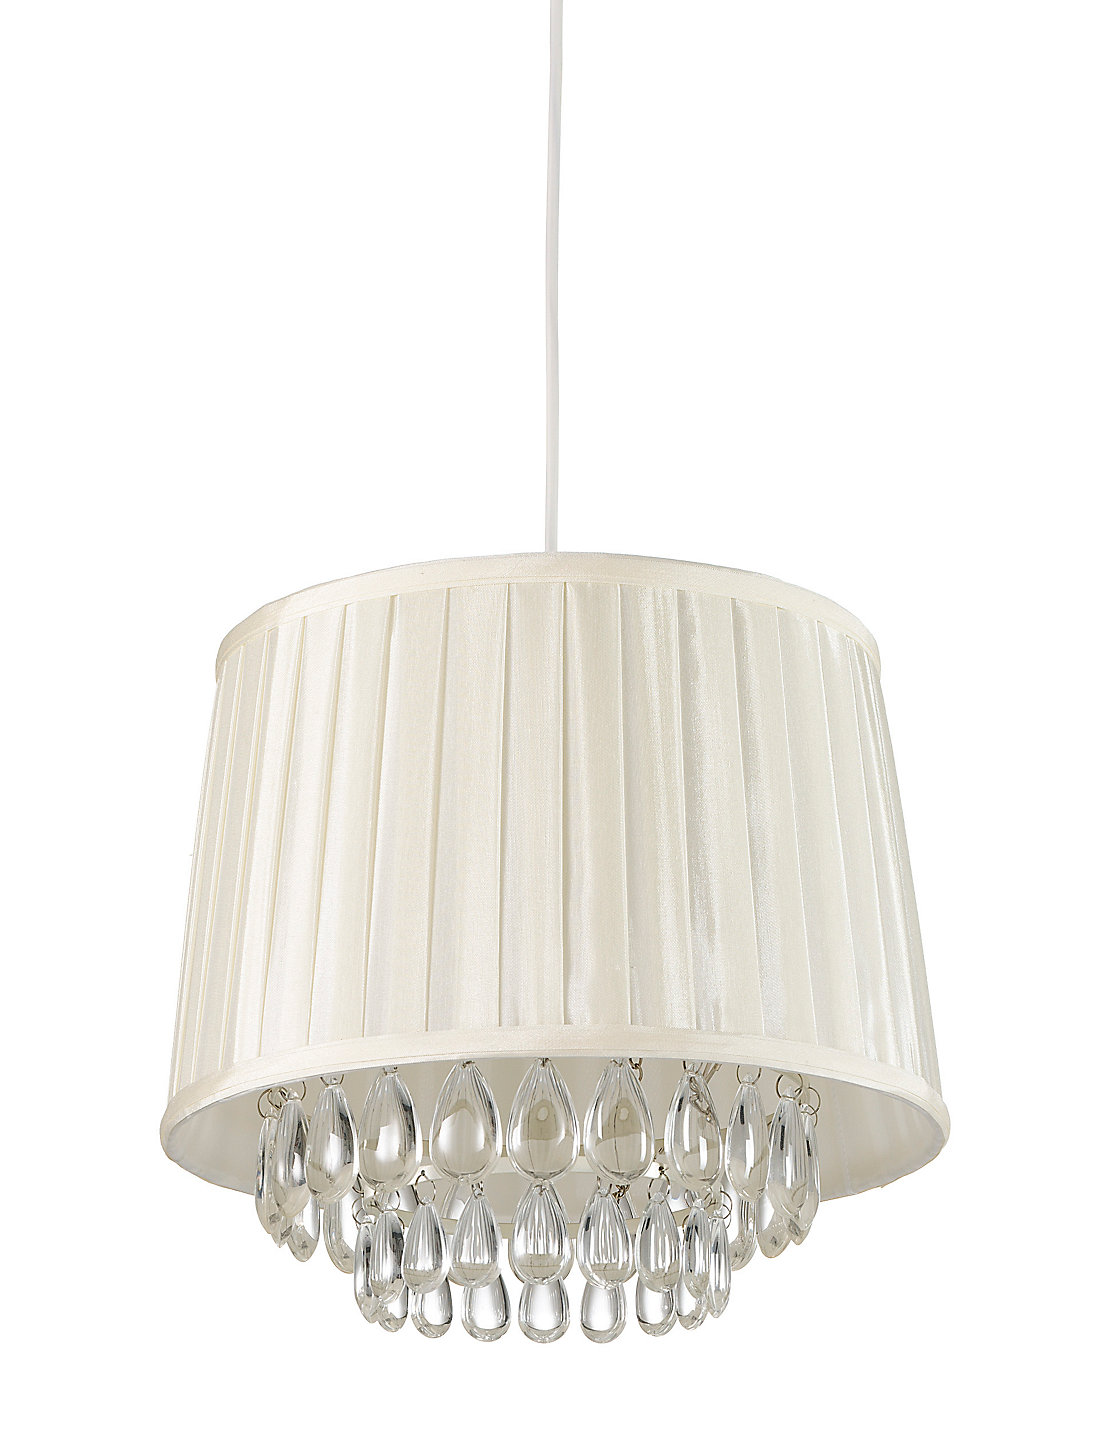 porcelain lighting. priscilla shade porcelain lighting n